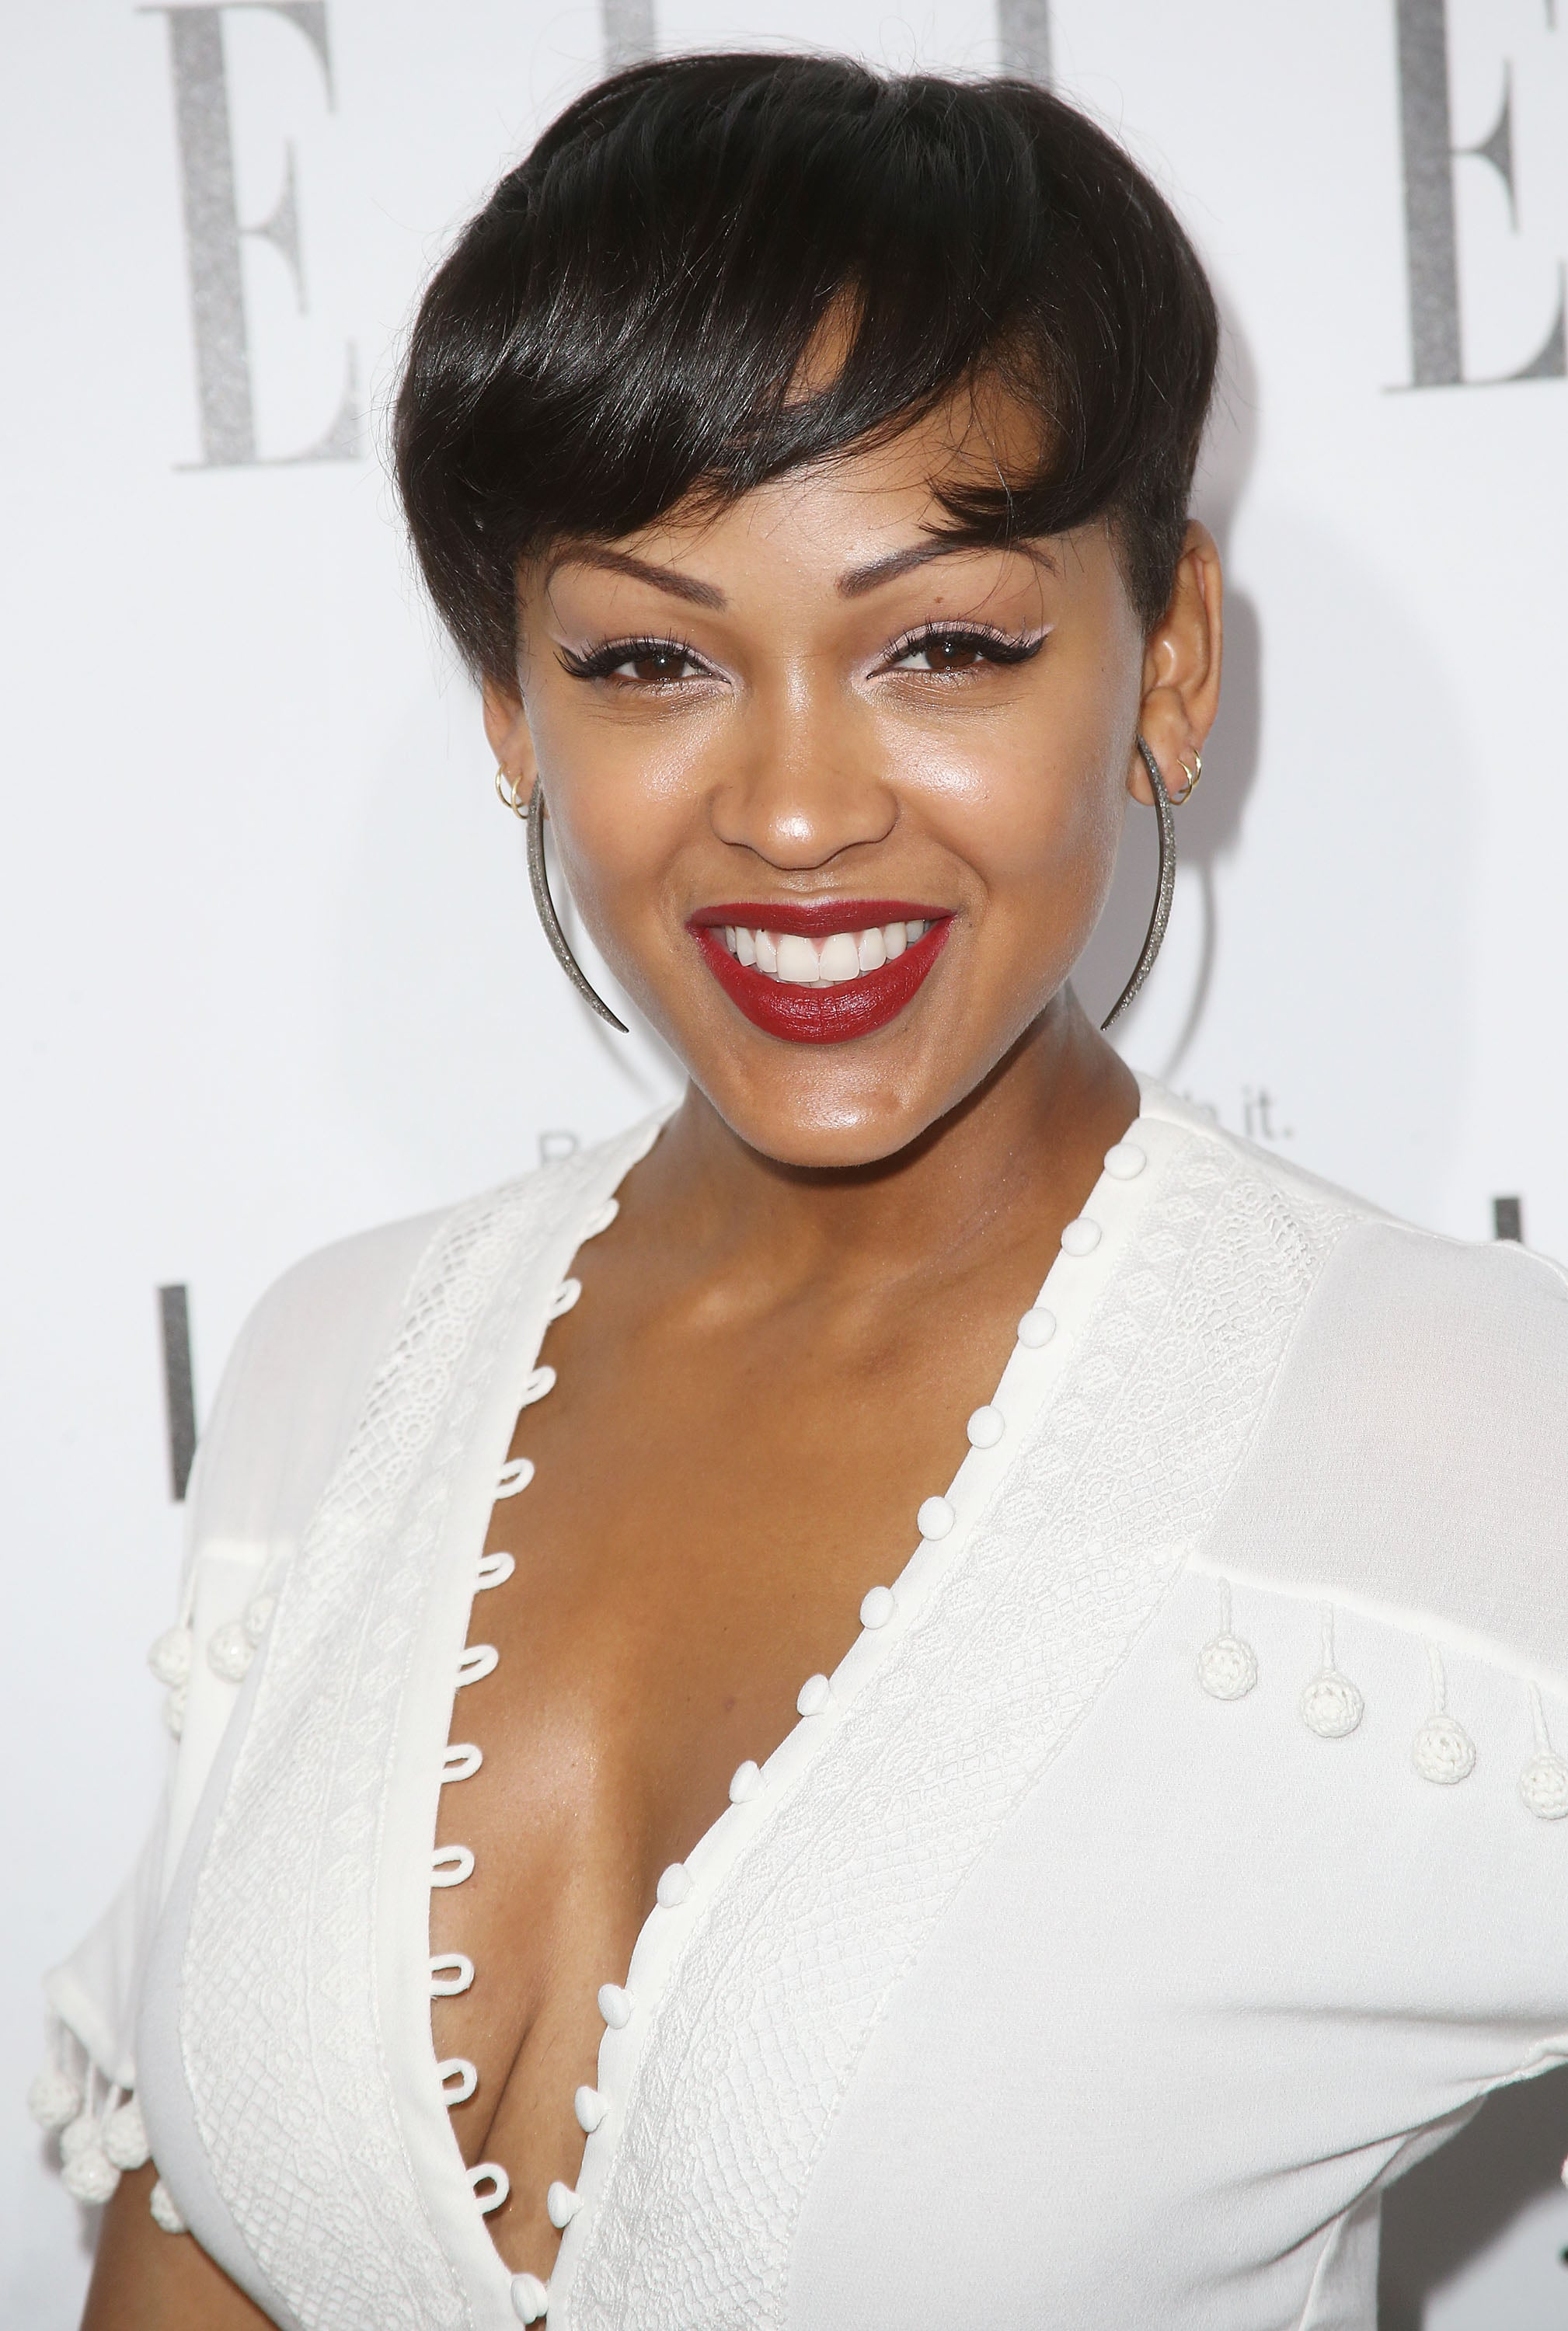 Meagan Good With a Pixie Cut  12 Celebrity Pixie Haircuts That